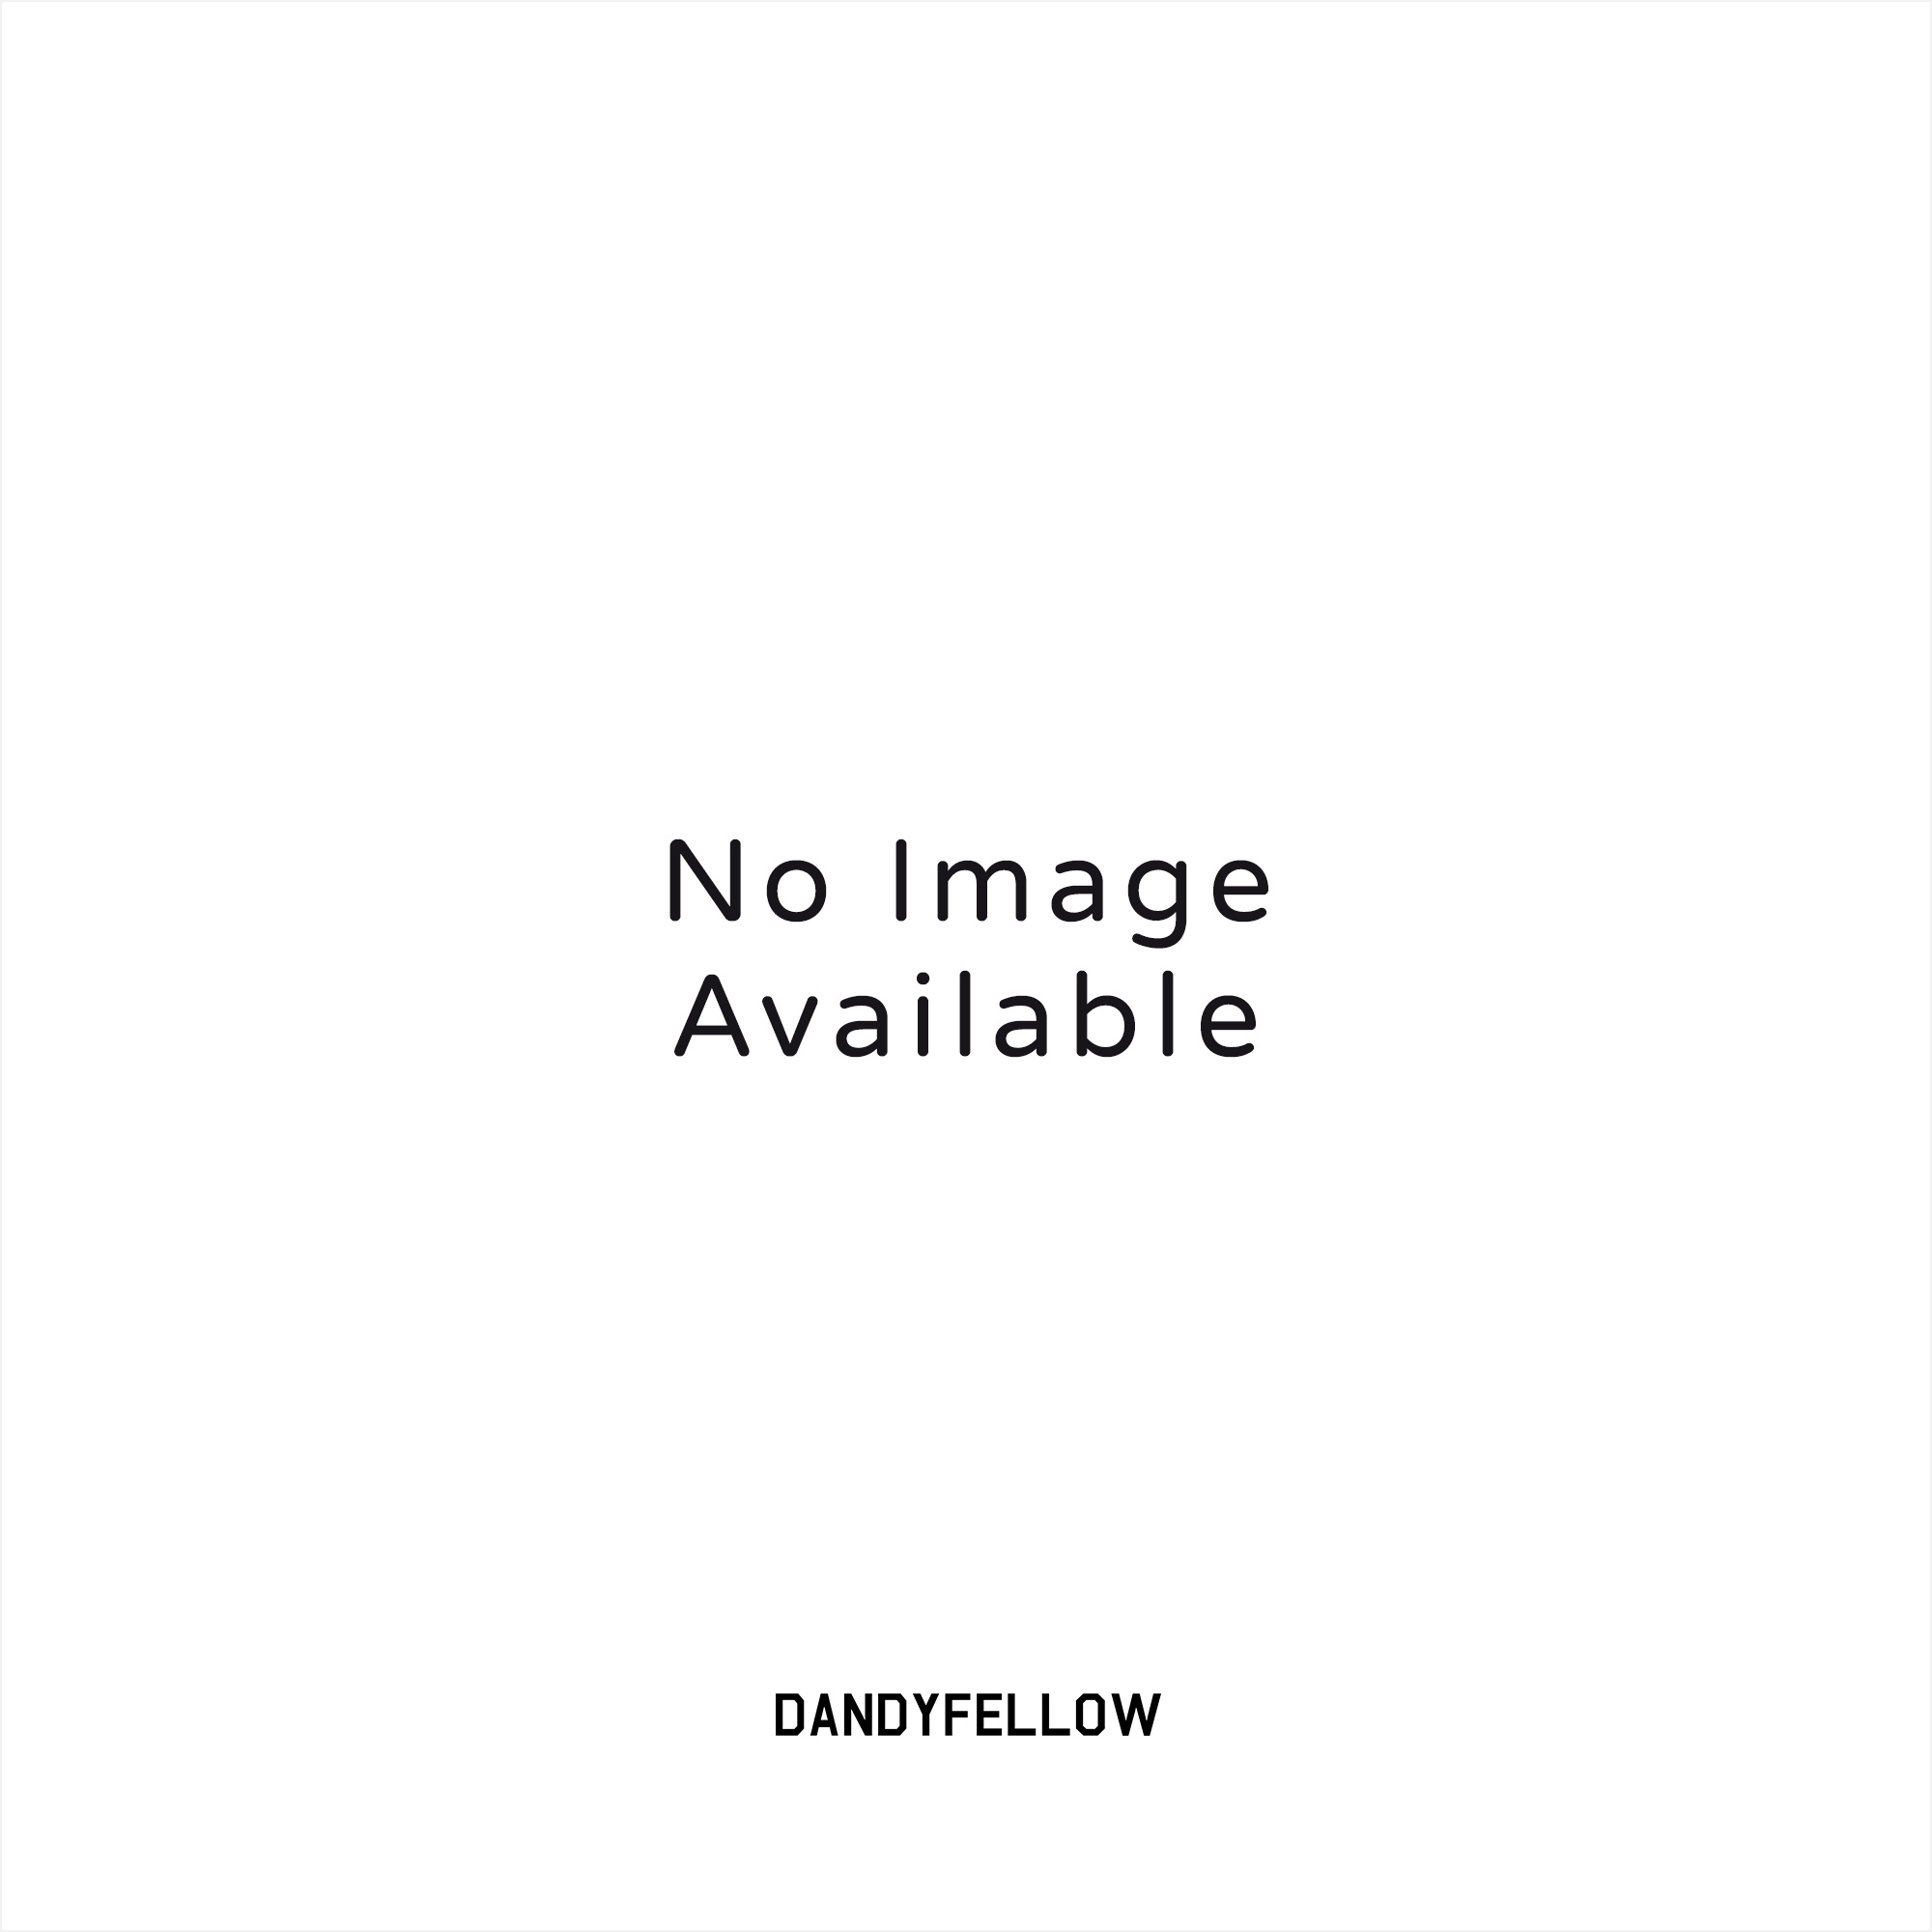 Nudie Jeans Steady Eddie Indigo Dry Selvage Denim Jeans